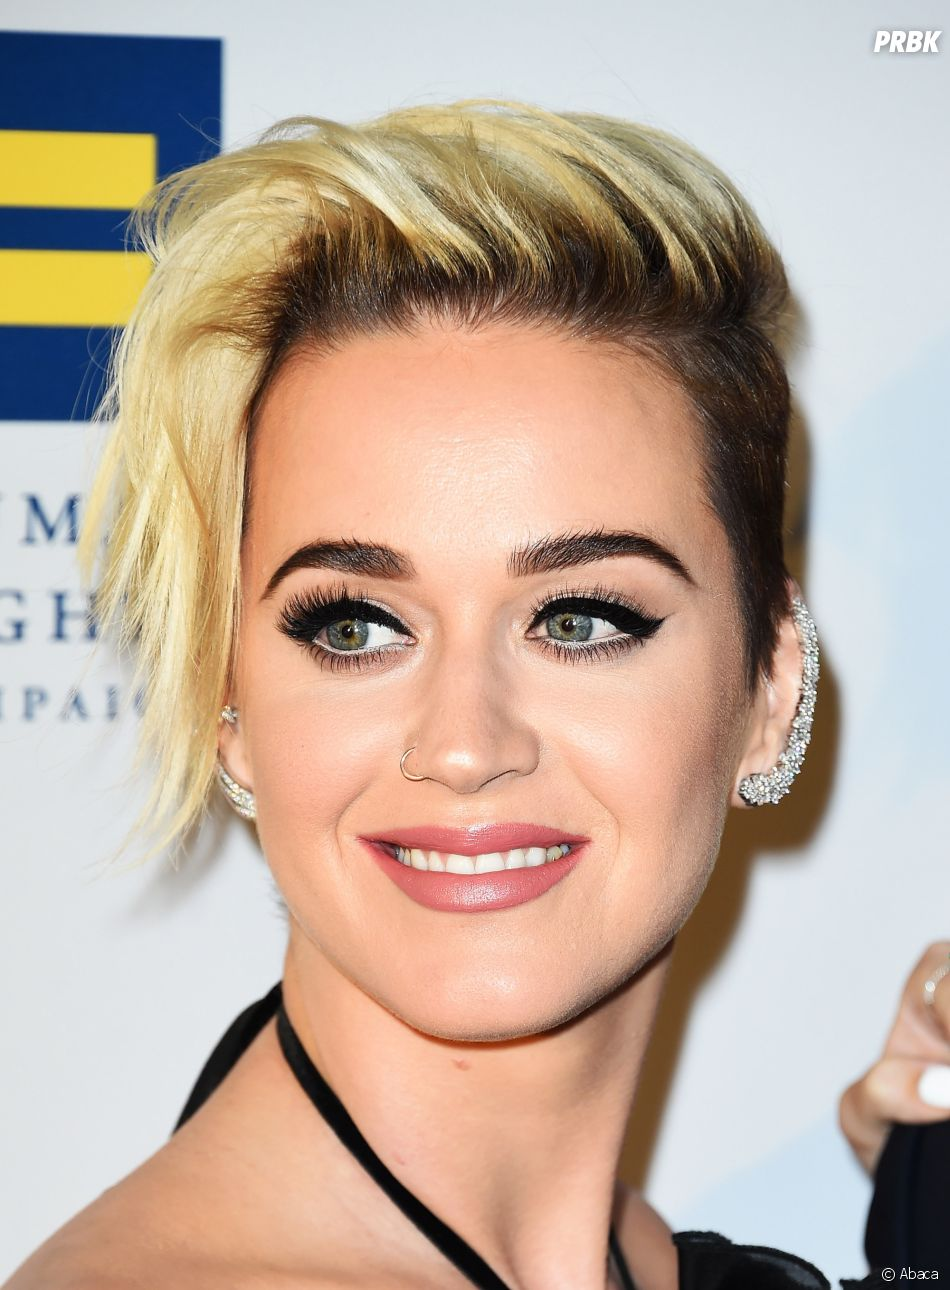 coiffure katy perry. Black Bedroom Furniture Sets. Home Design Ideas